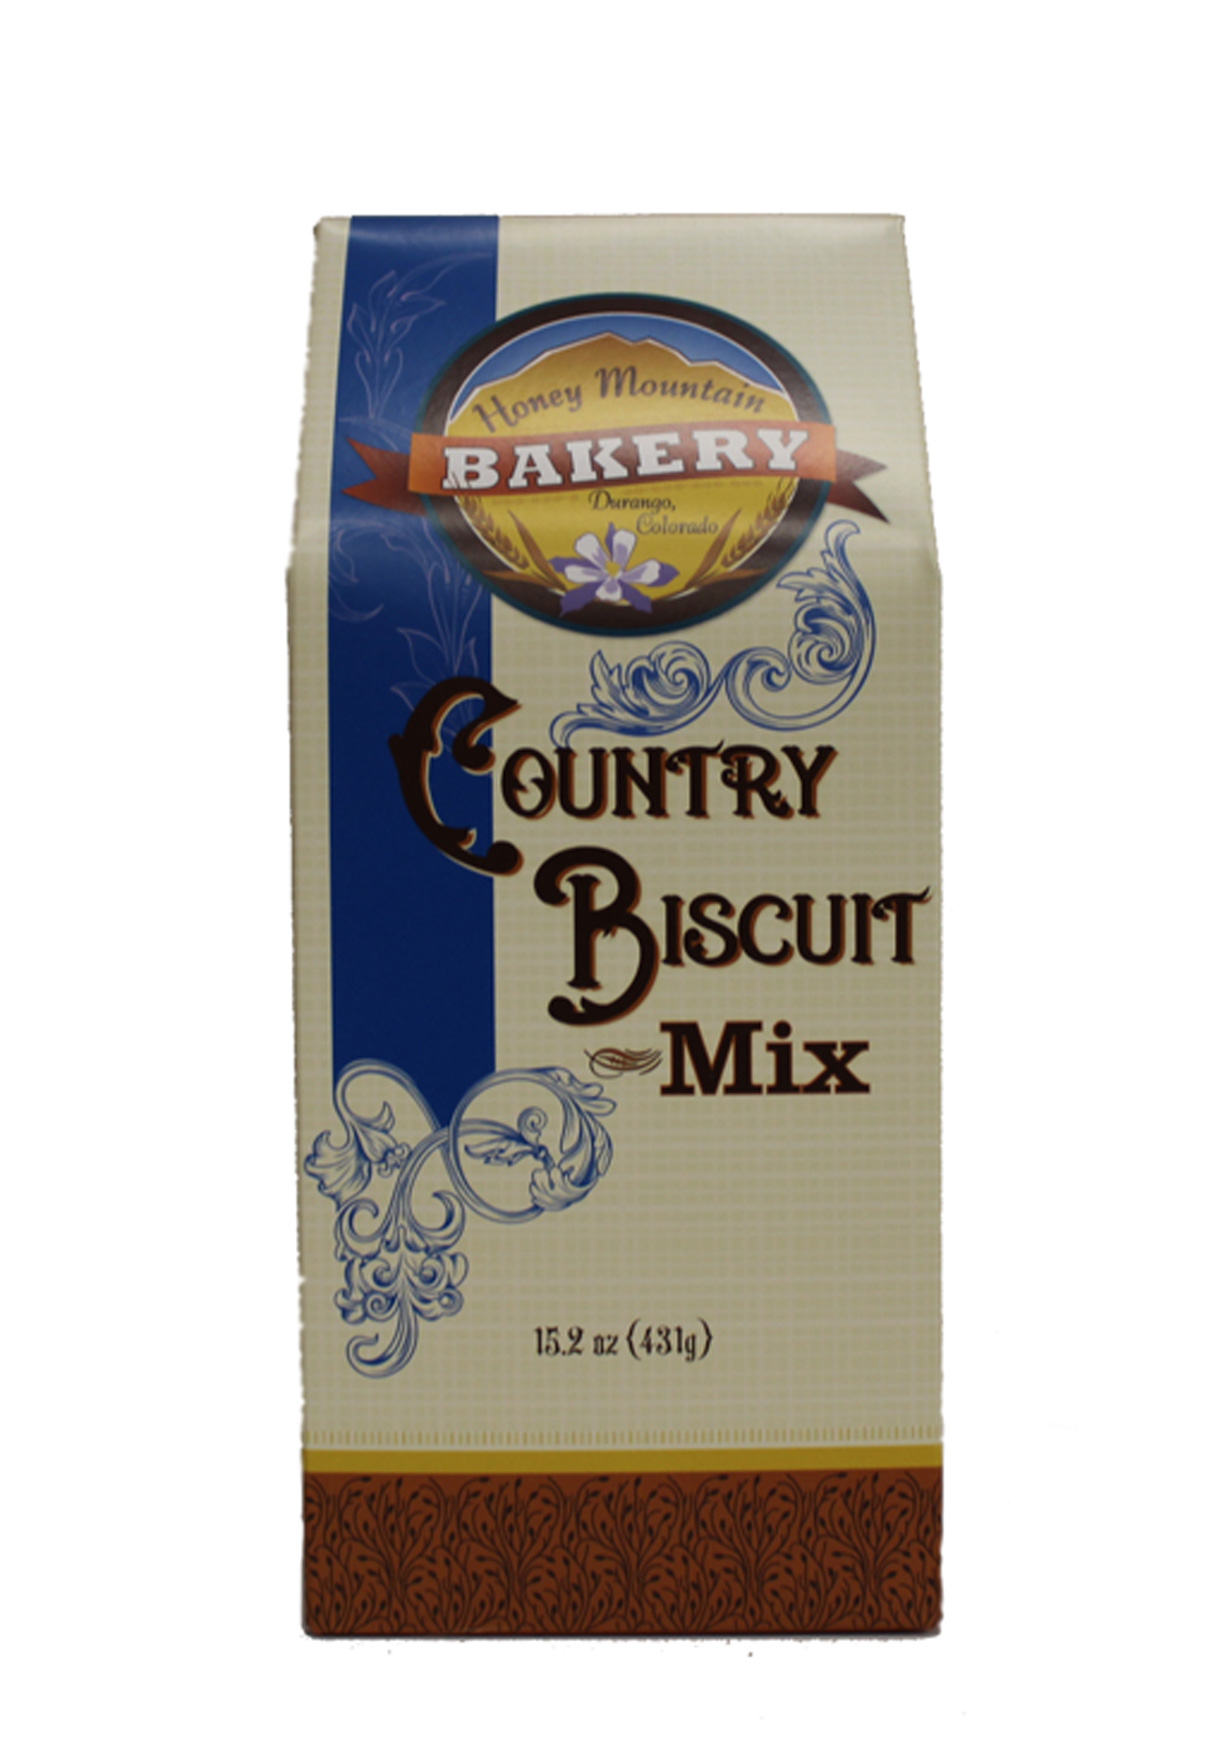 HONEY MOUNTAIN BAKERY BISCUIT MIX